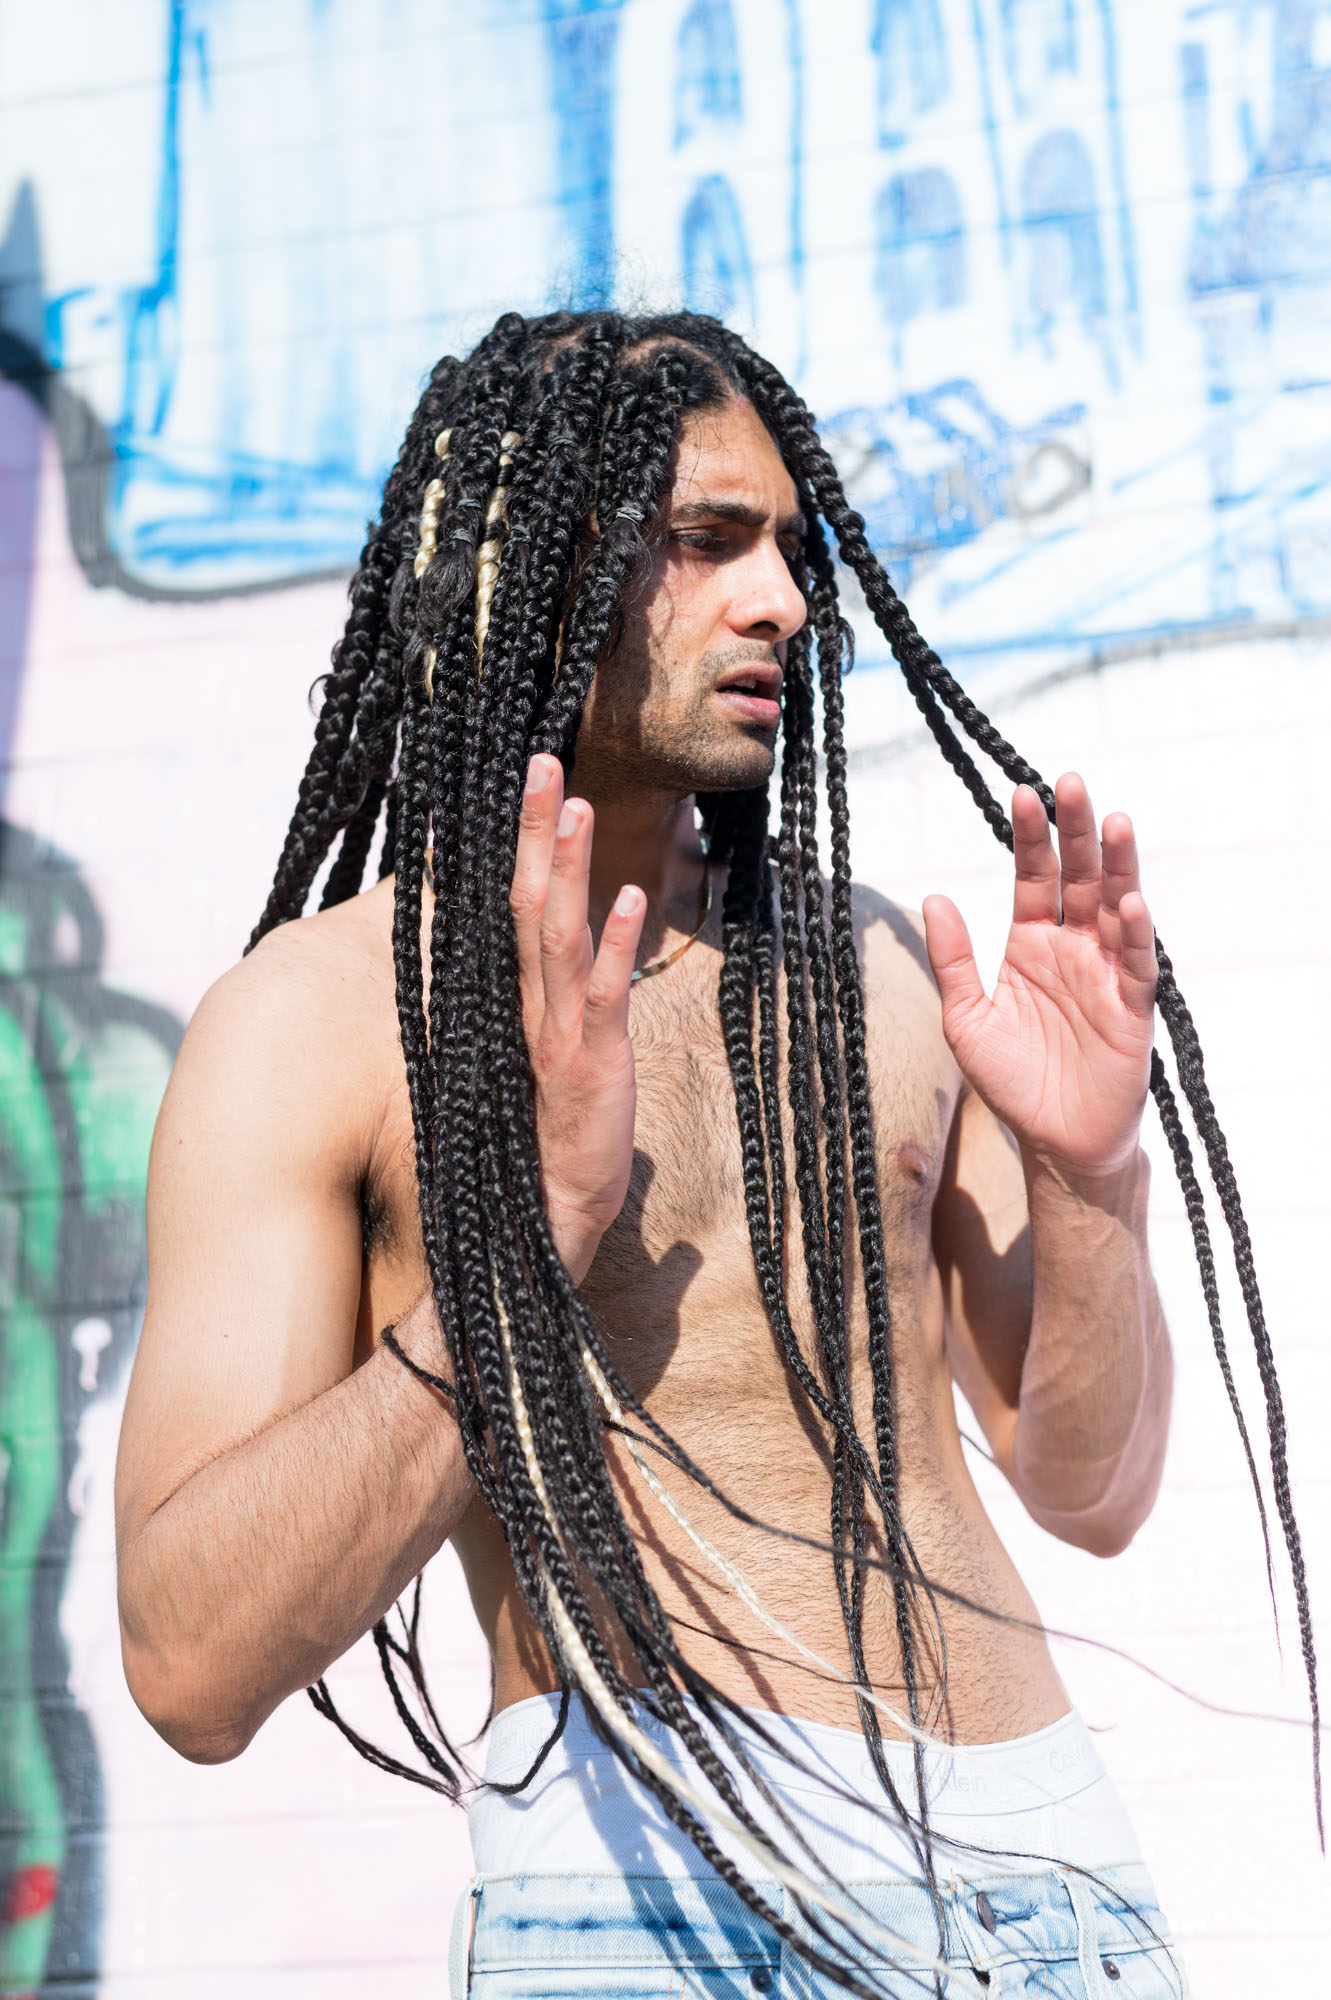 a model parts his braids on a sunny day in Portland, Oregon